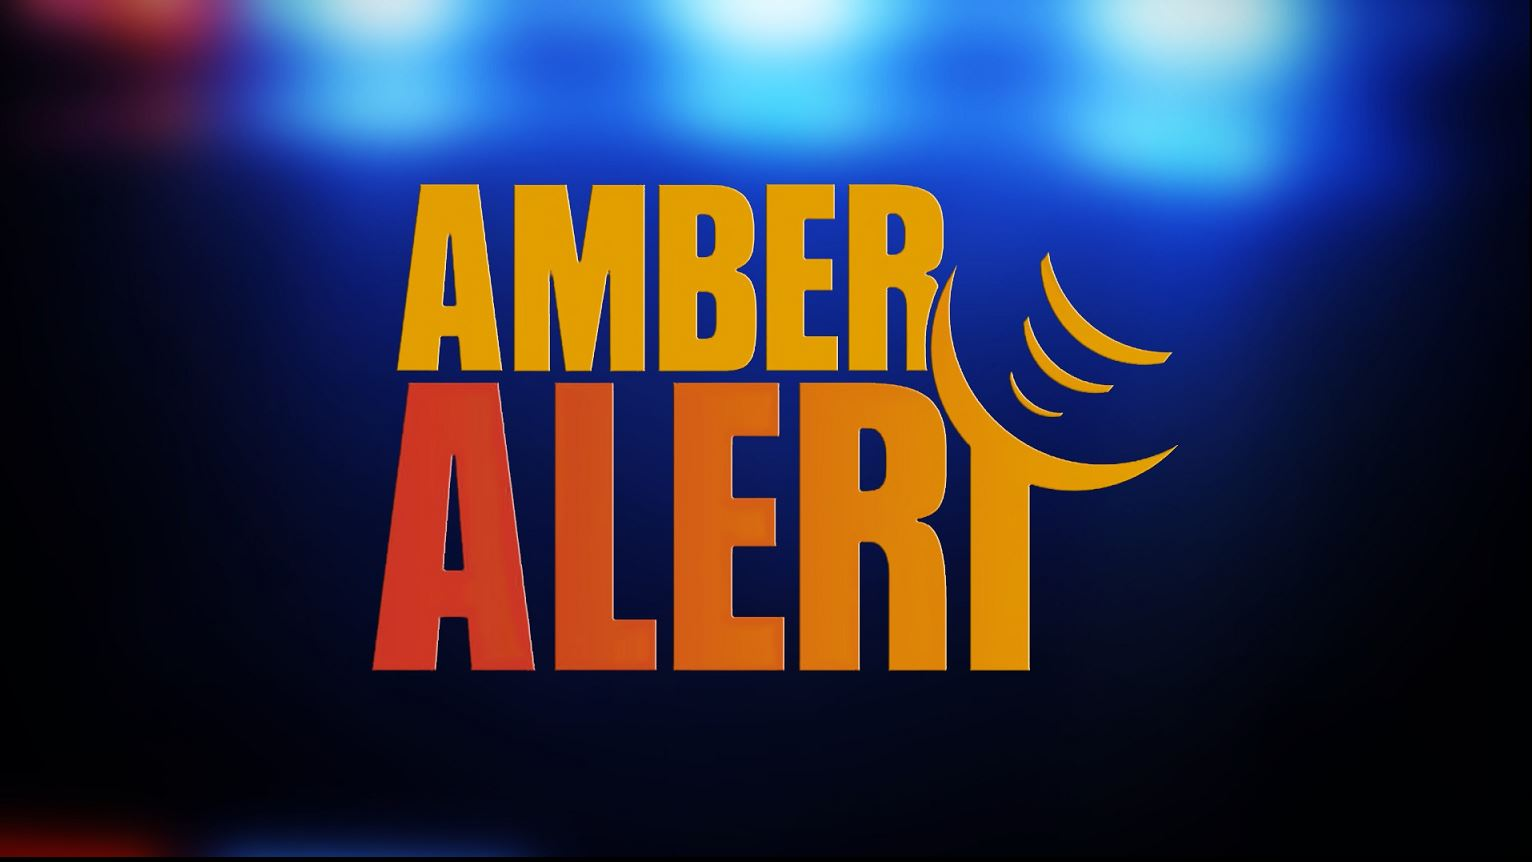 Amber Alert issued for missing 3-year-old girl from Onslow County